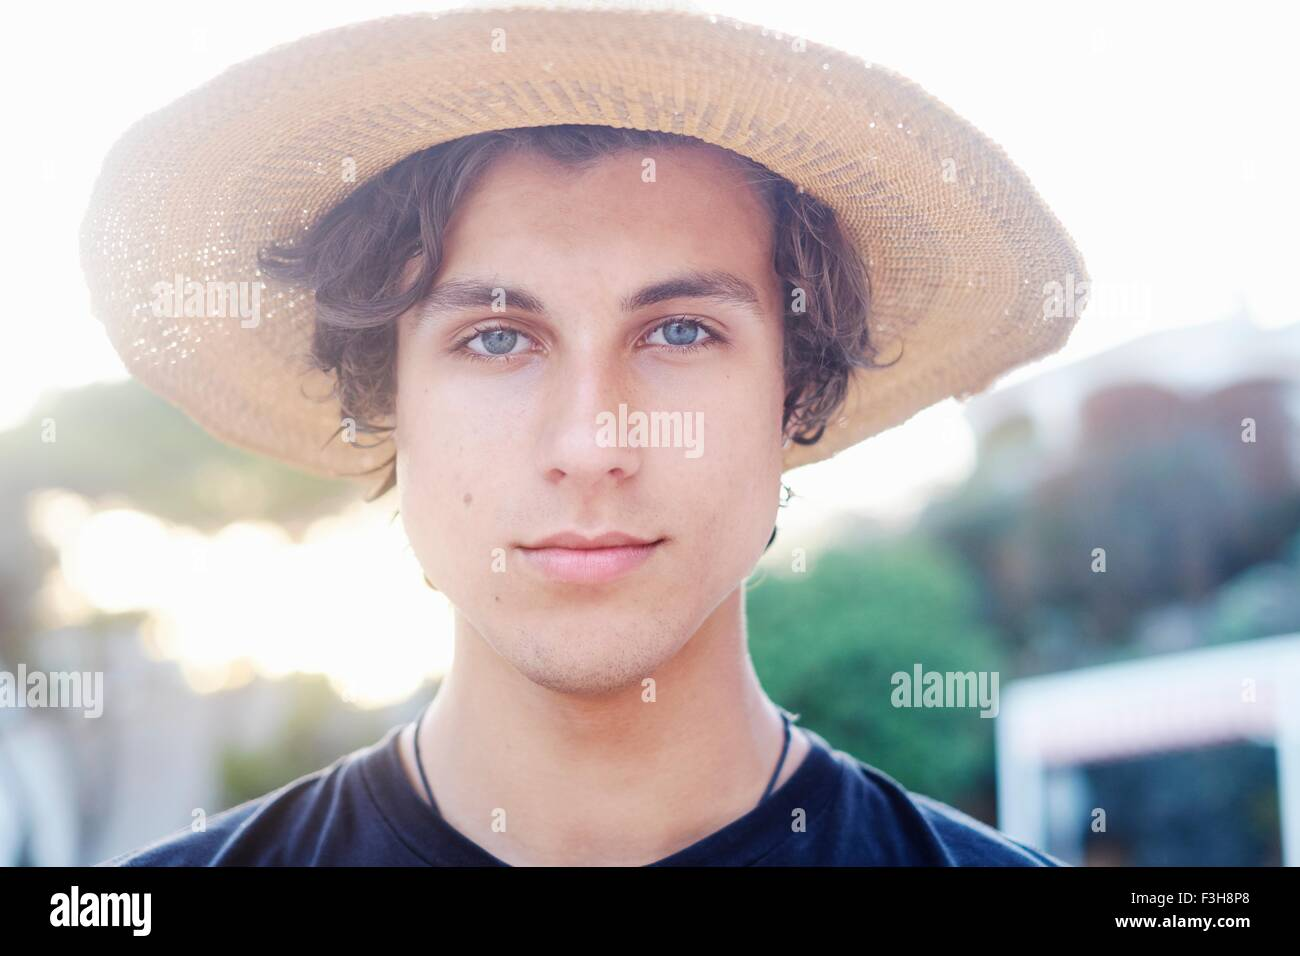 Close up portrait of young man wearing sunhat at beach - Stock Image